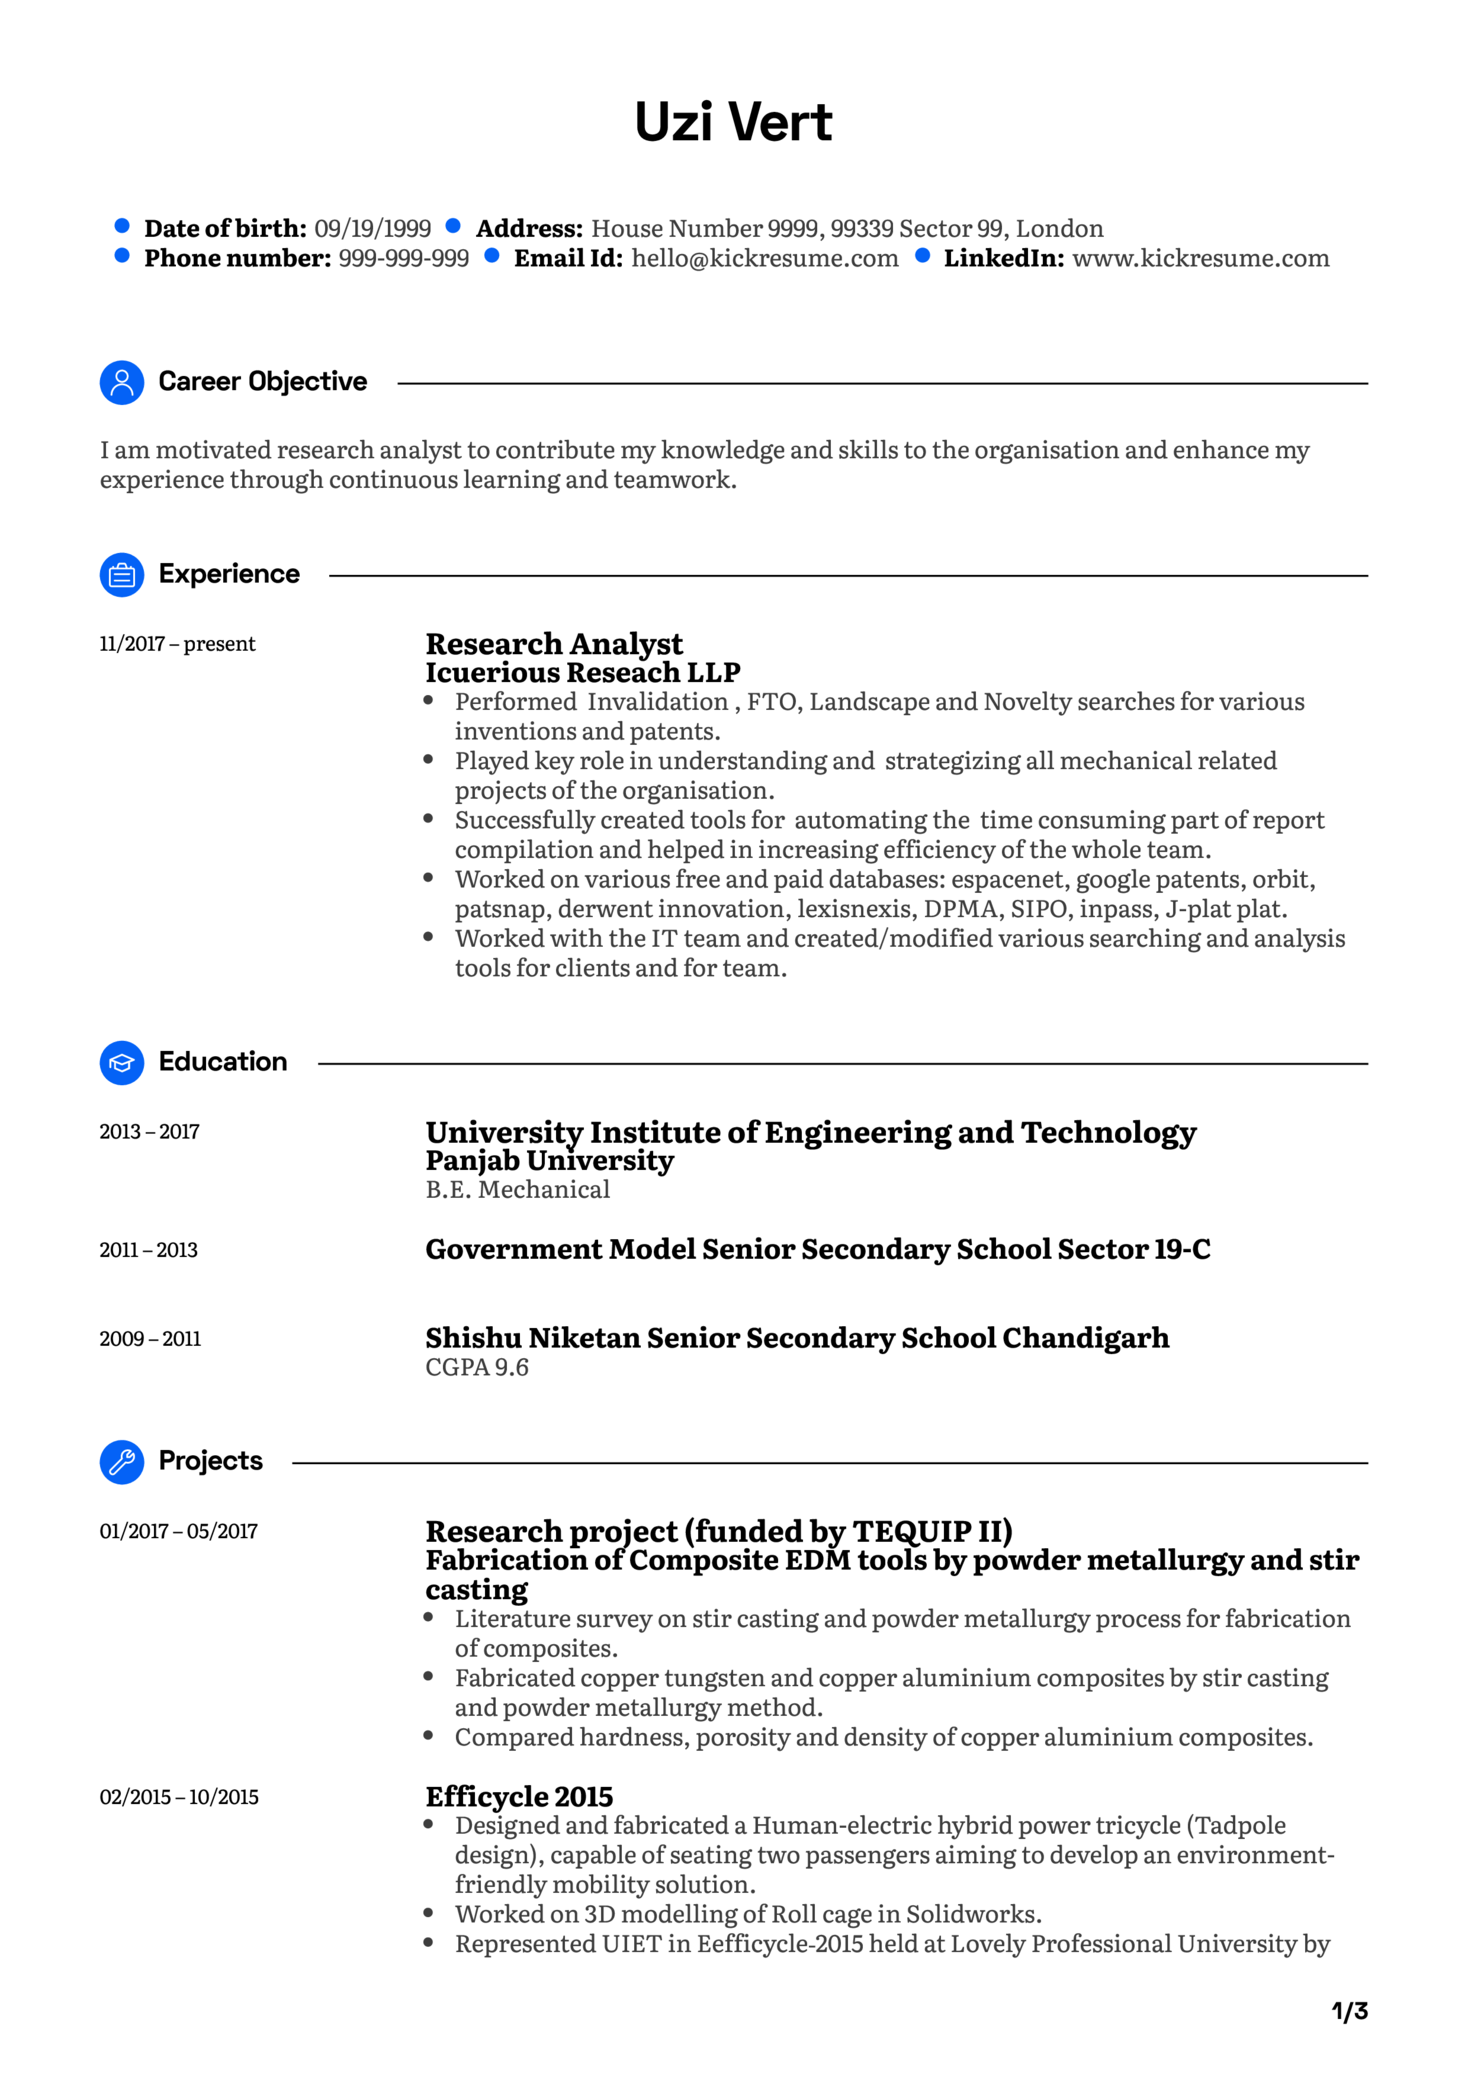 Software Analyst CV Example (Part 1)